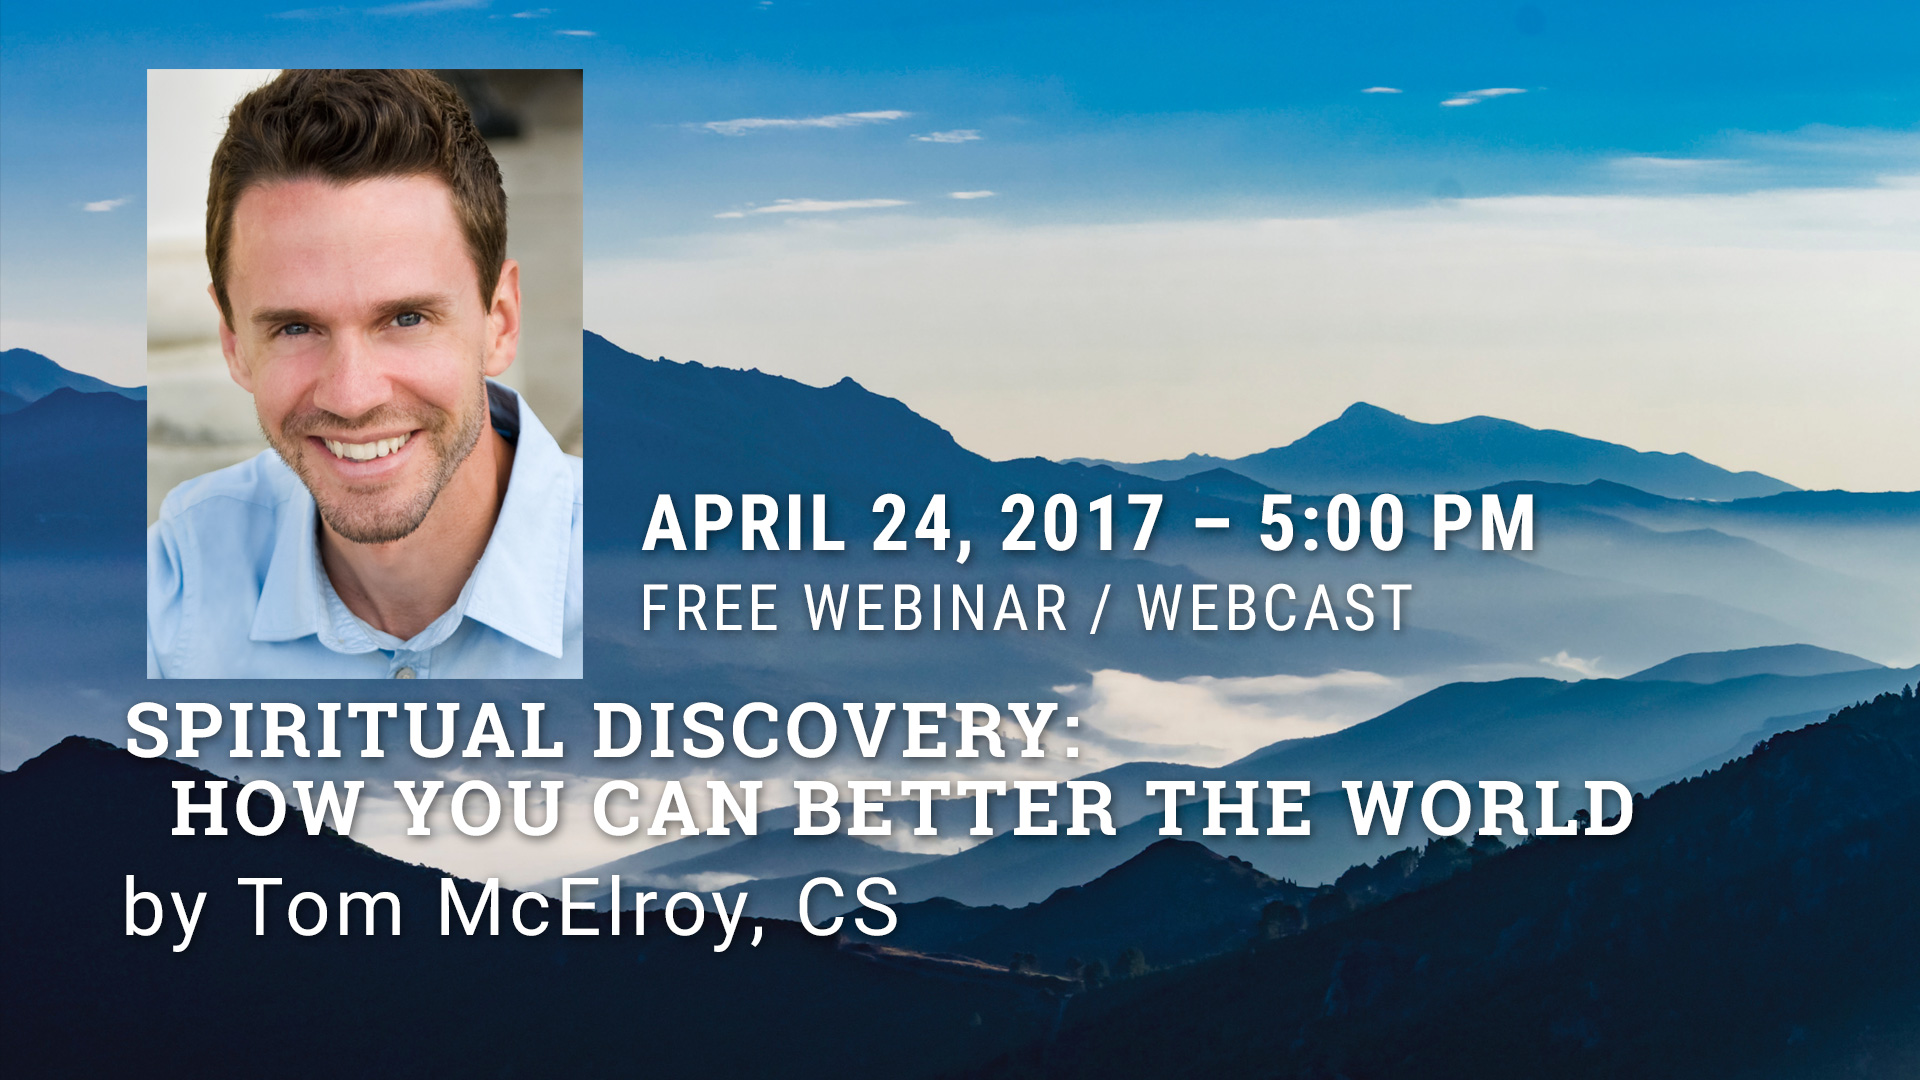 April 24 - Spiritual Discovery: How You Can Better the World by Tom McElroy, CS